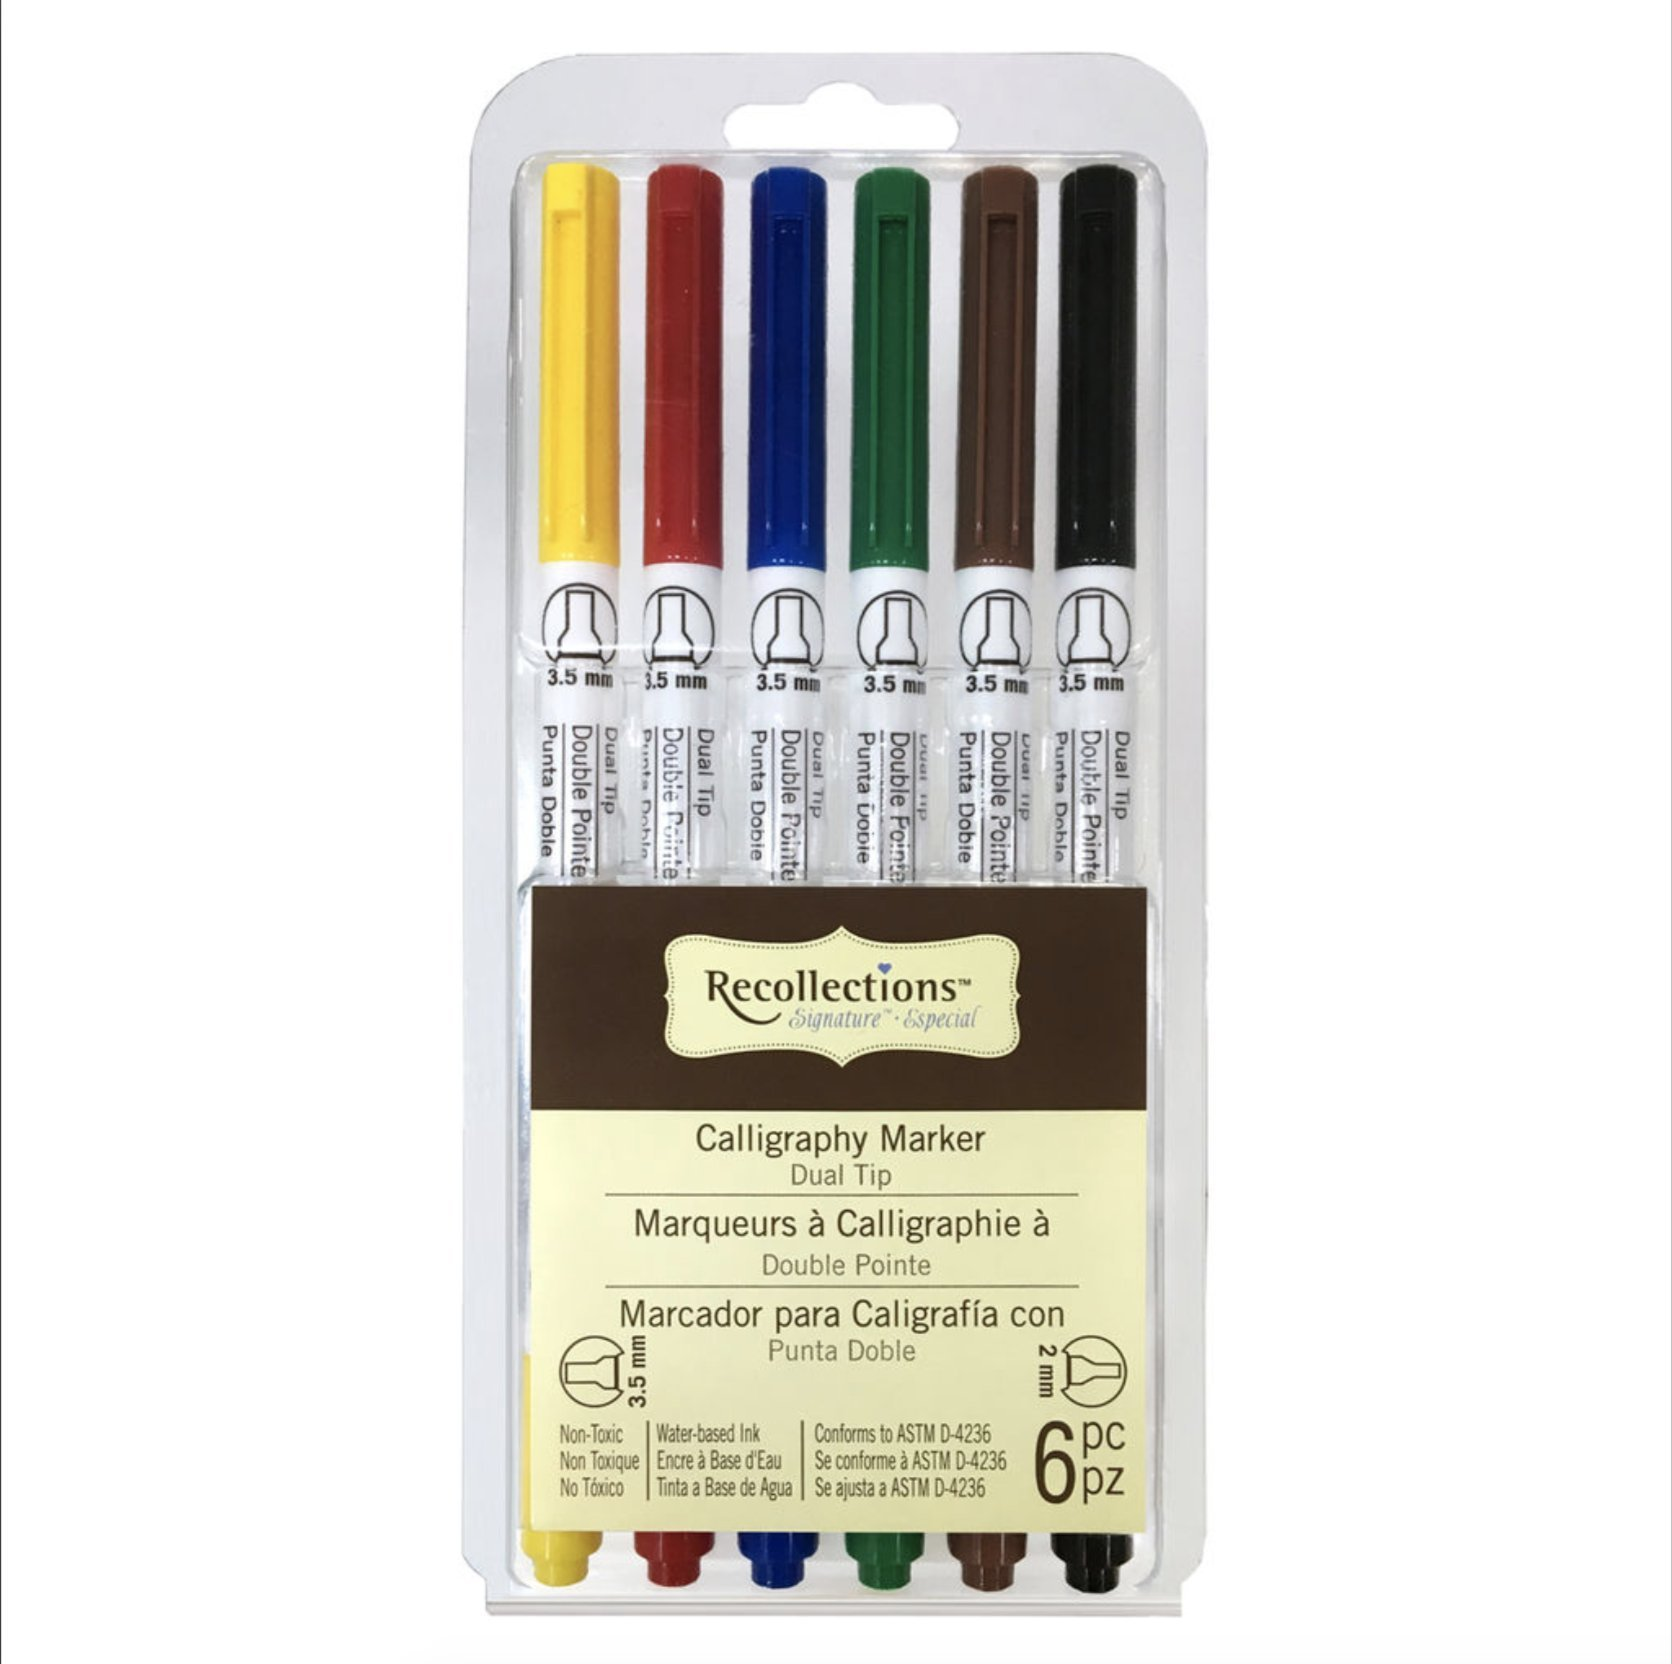 Signature Dual Tip Calligraphy Marker Set By Recollections by Recollections (Image #1)